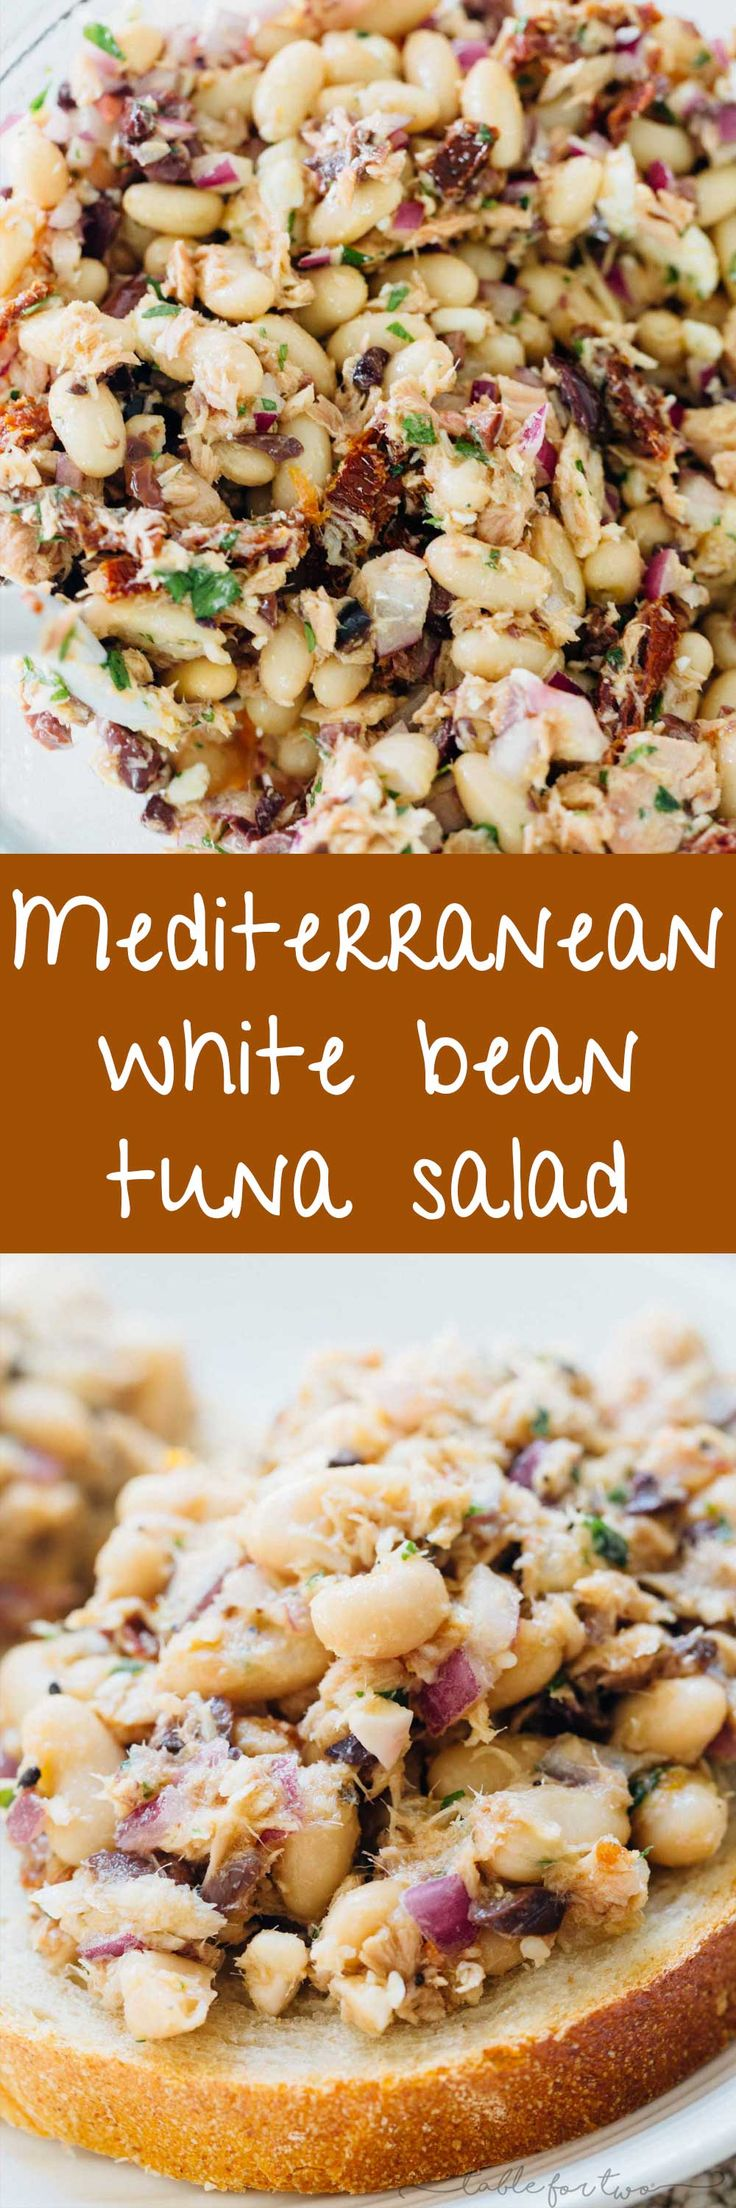 Mediterranean tuna white bean salad is full of flavorful ingredients and deliciously tasty tuna that is full of protein! An easy and healthy lunch option for those who are looking for new lunch ideas that will keep you full! #ad @genovaseafood